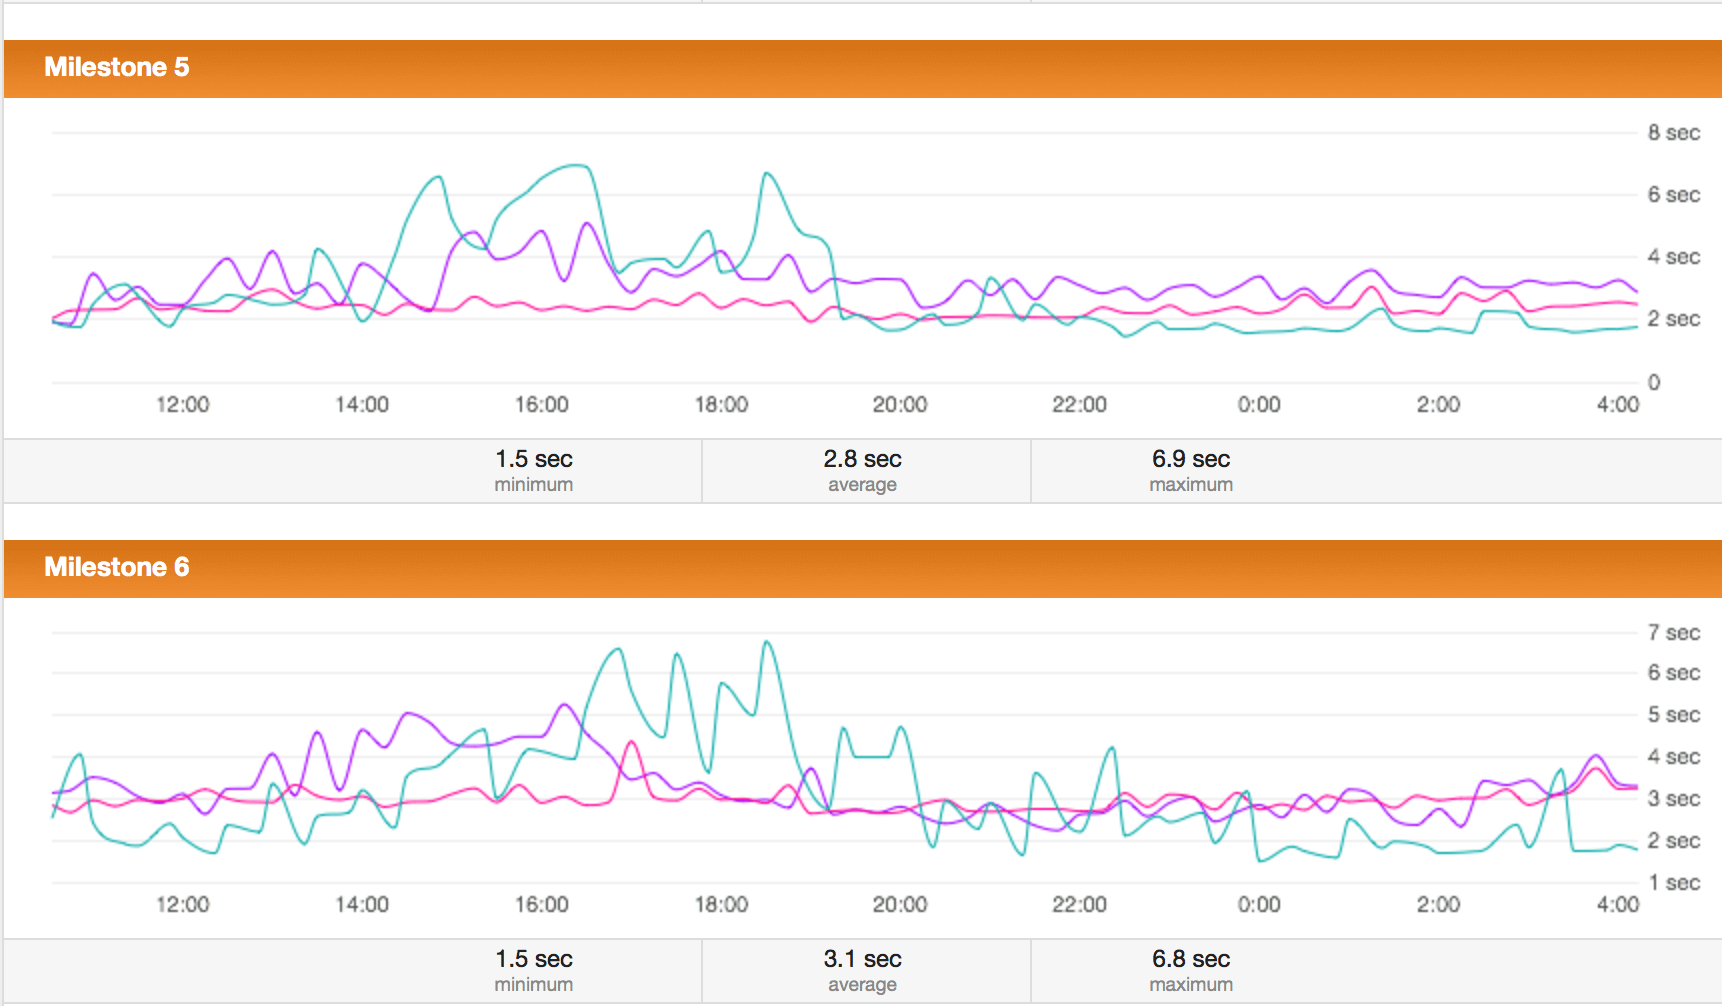 Comparison View segmented by milestone. These two milestones had slightly different performance trends because they use different components of the underlying application.